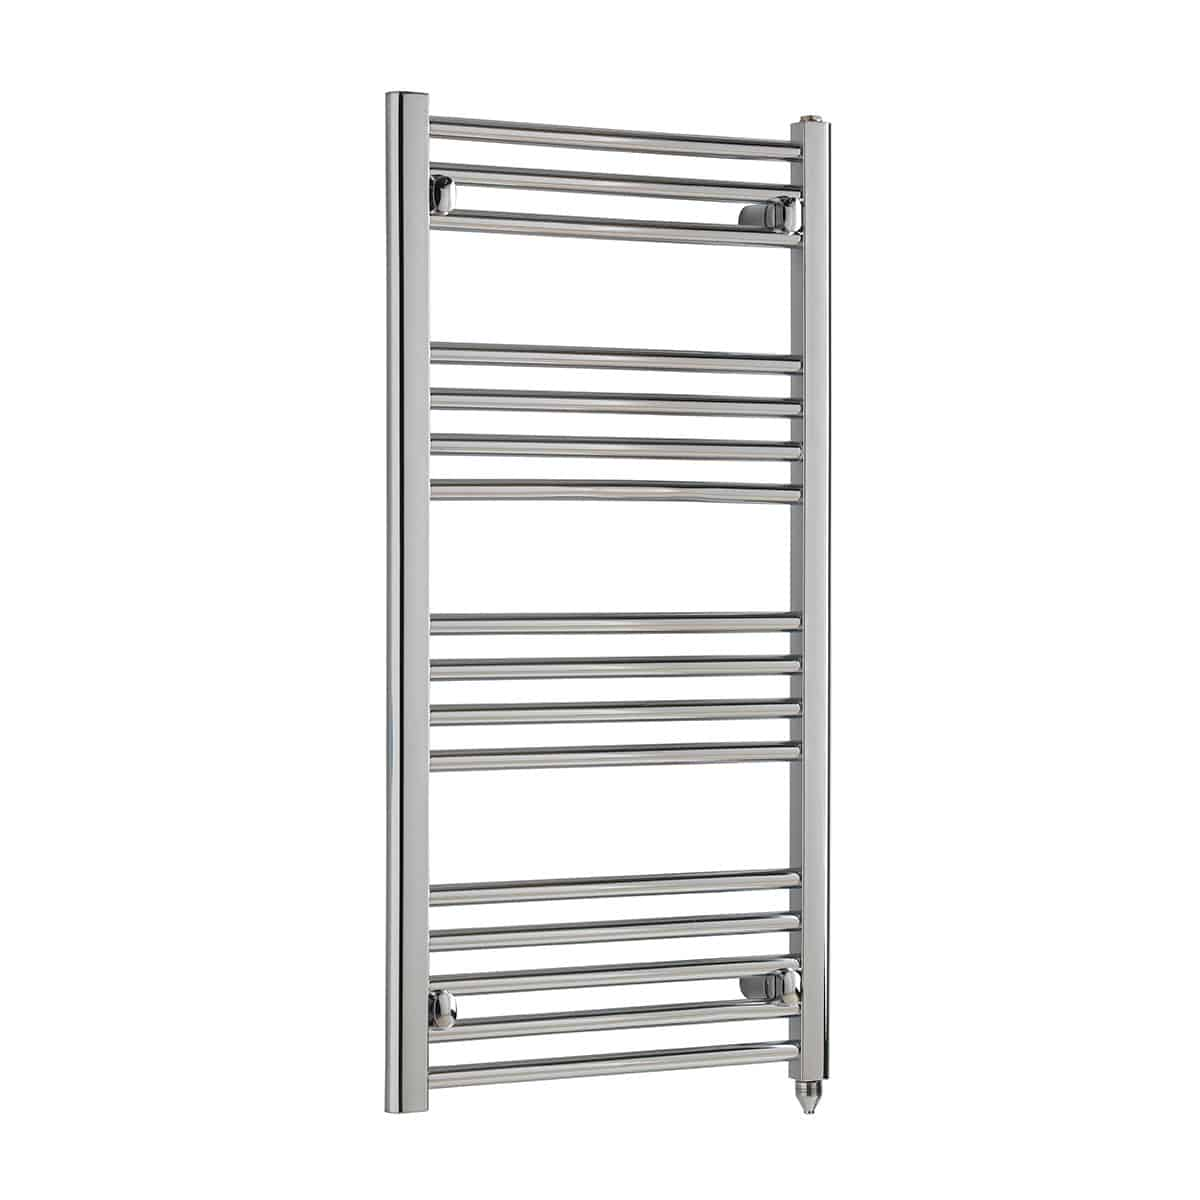 thermostatic electric heated towel rail straight chrome. Black Bedroom Furniture Sets. Home Design Ideas